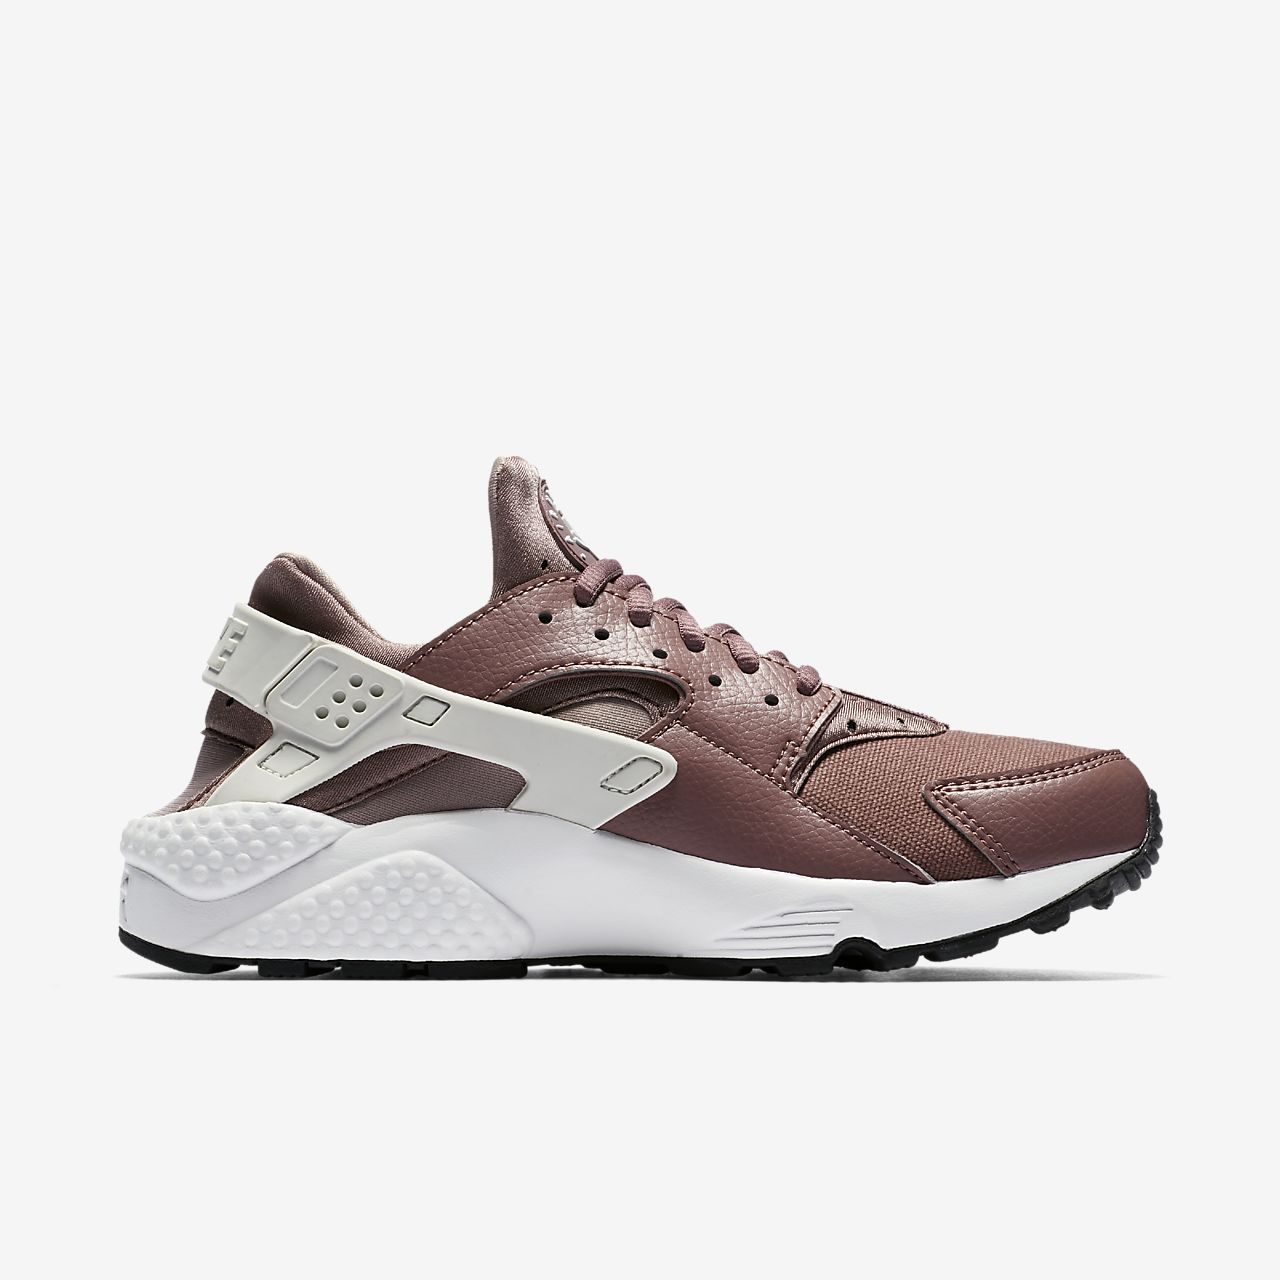 check out 3654c 6e805 Low Resolution Nike Air Huarache Damesschoen Nike Air Huarache Damesschoen